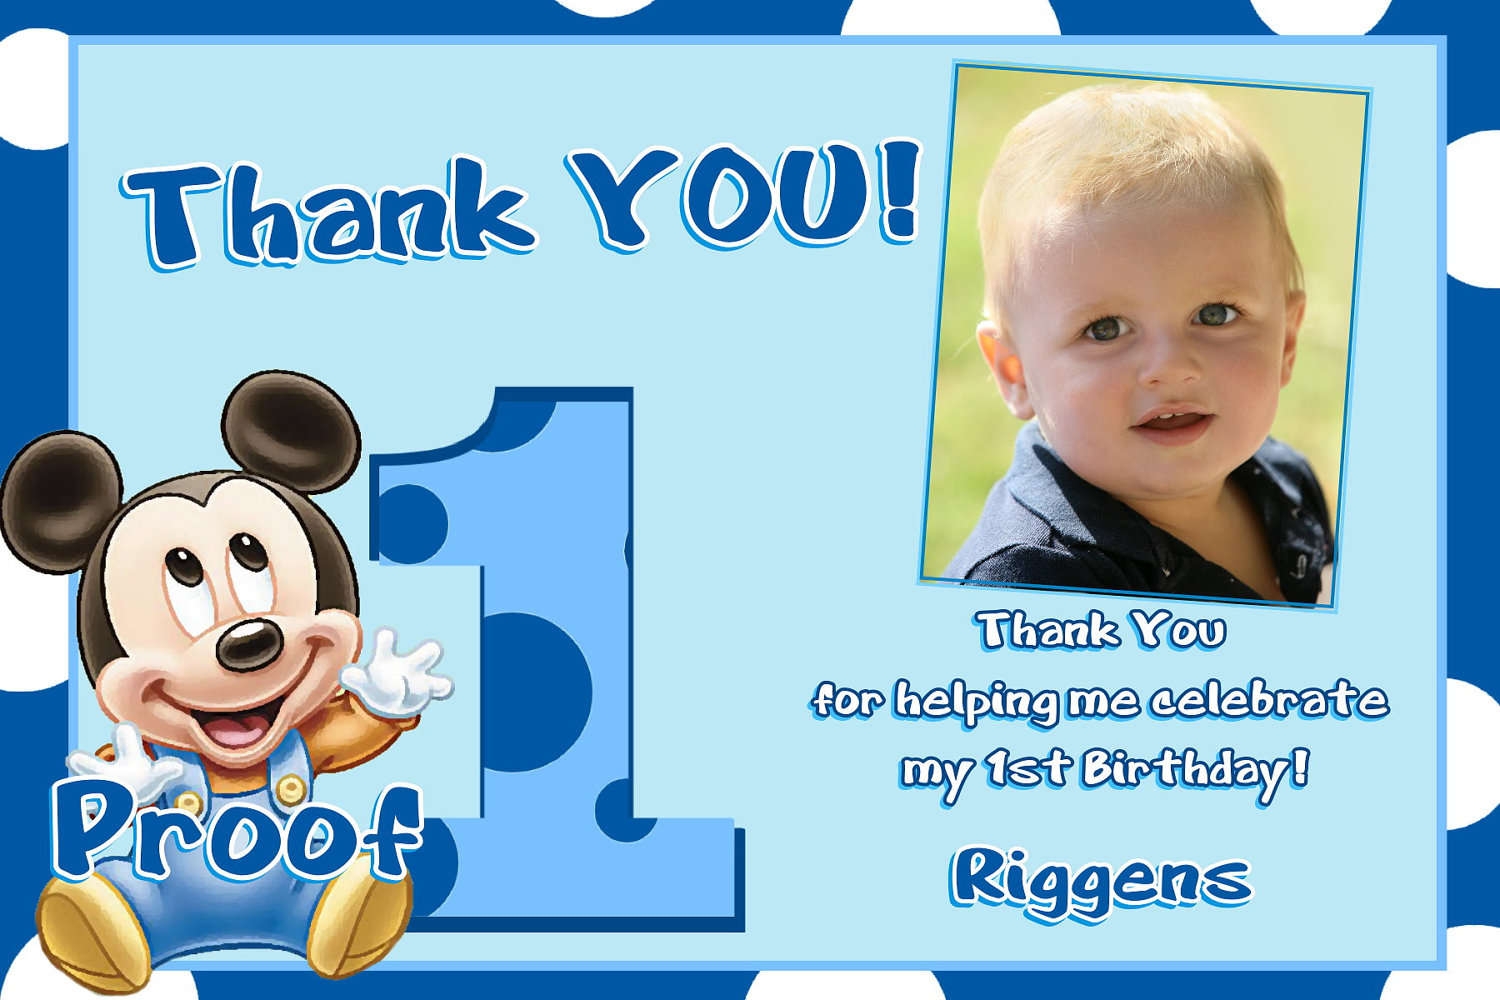 thank you message for attending 1st birthday ; shocking-blue-1st-birthday-thank-you-cards-celebrate-awesome-ideas-riggens-name-cute-little-baby-adorable-proof-mickey-mouse